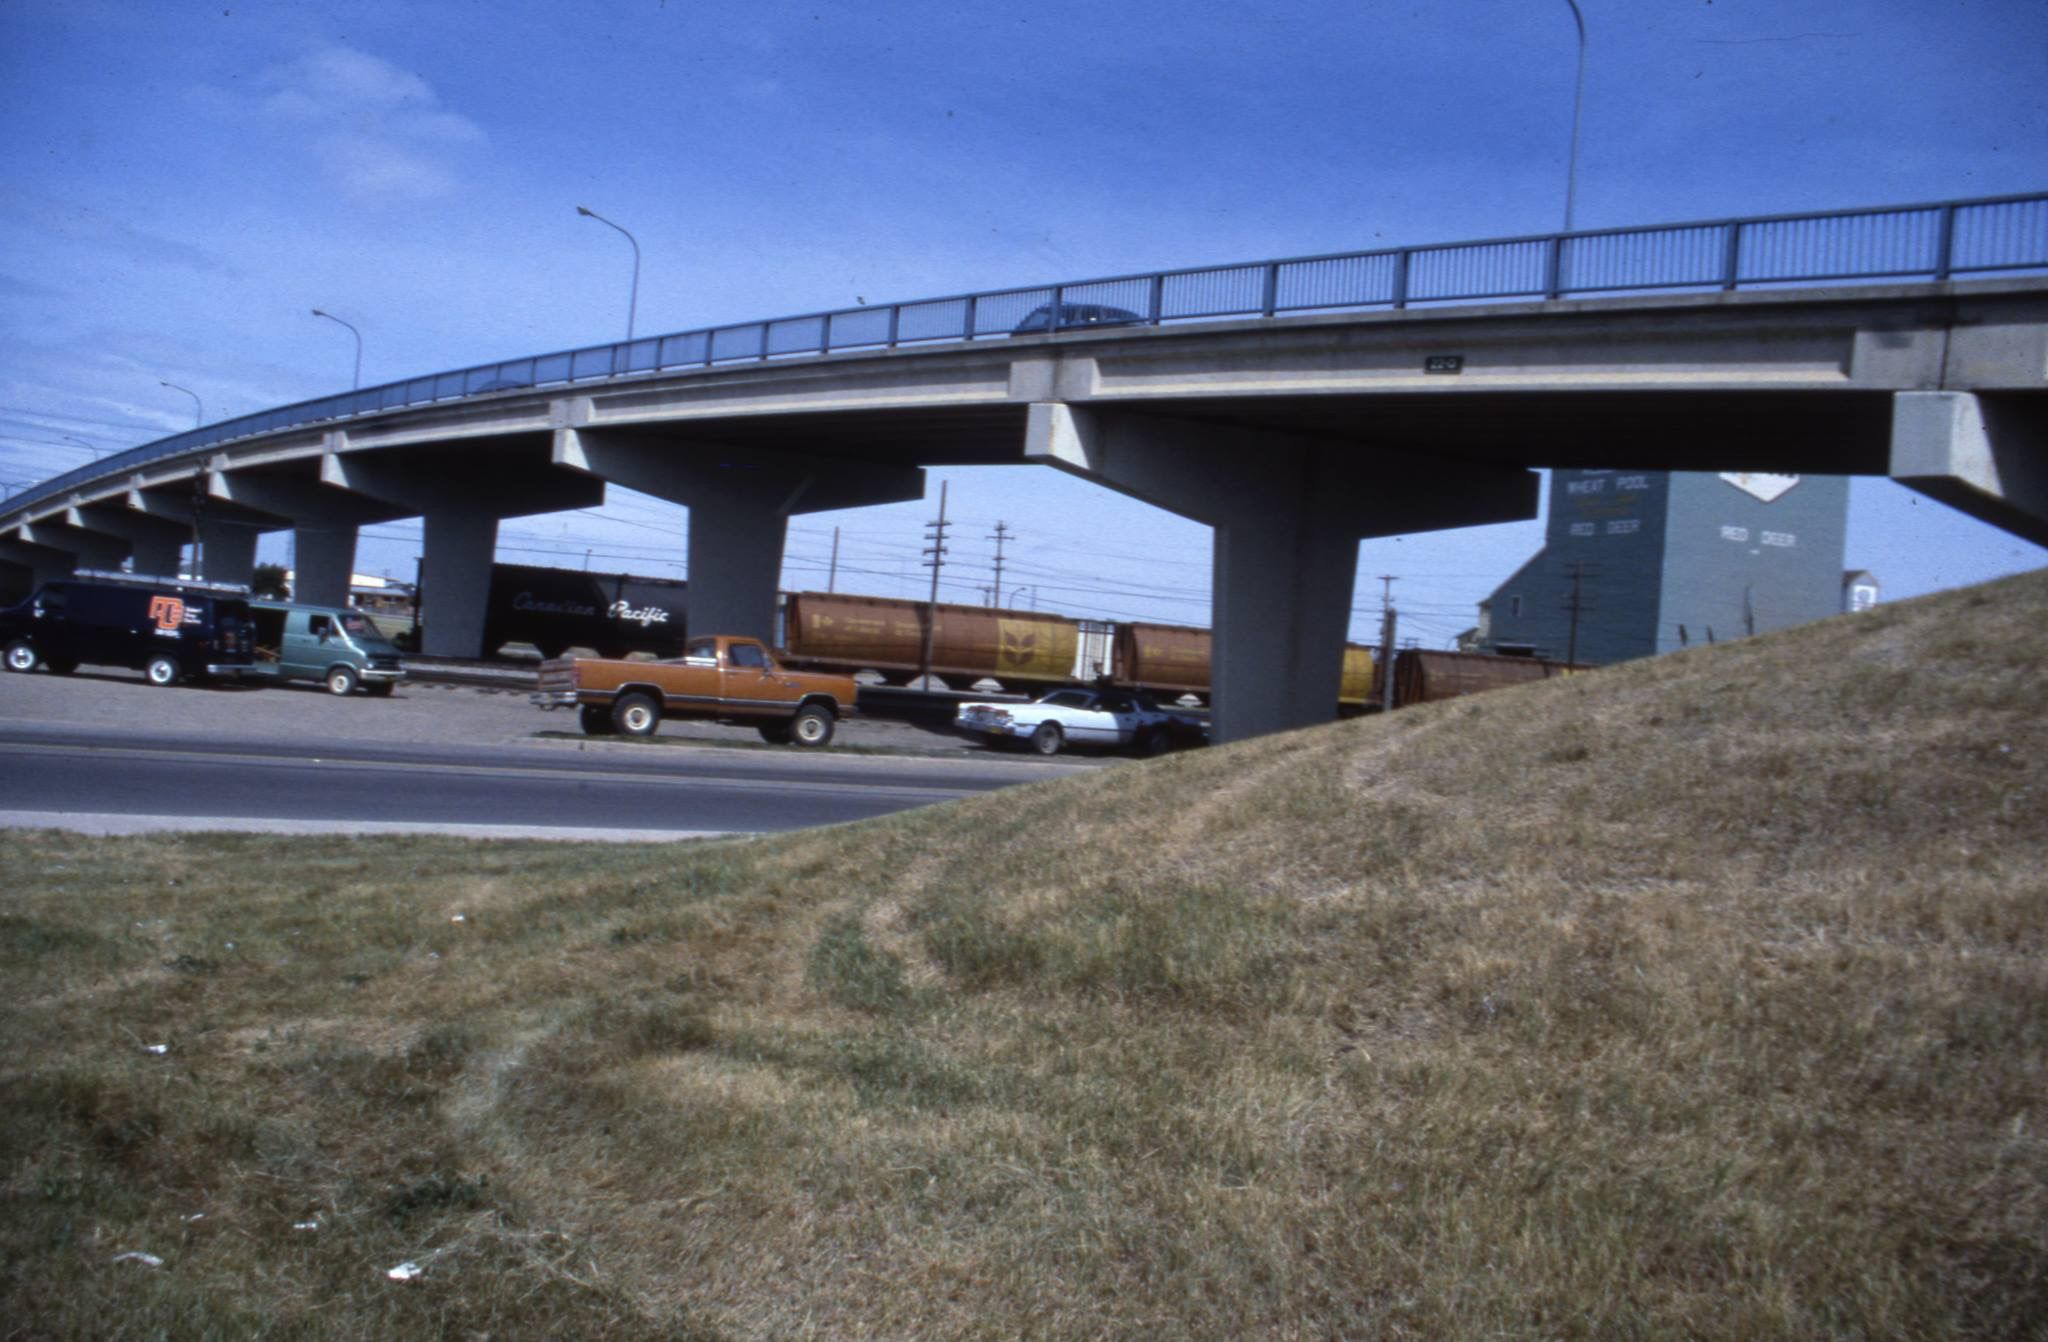 The 45th St overpass, 1980. The overpass was removed in